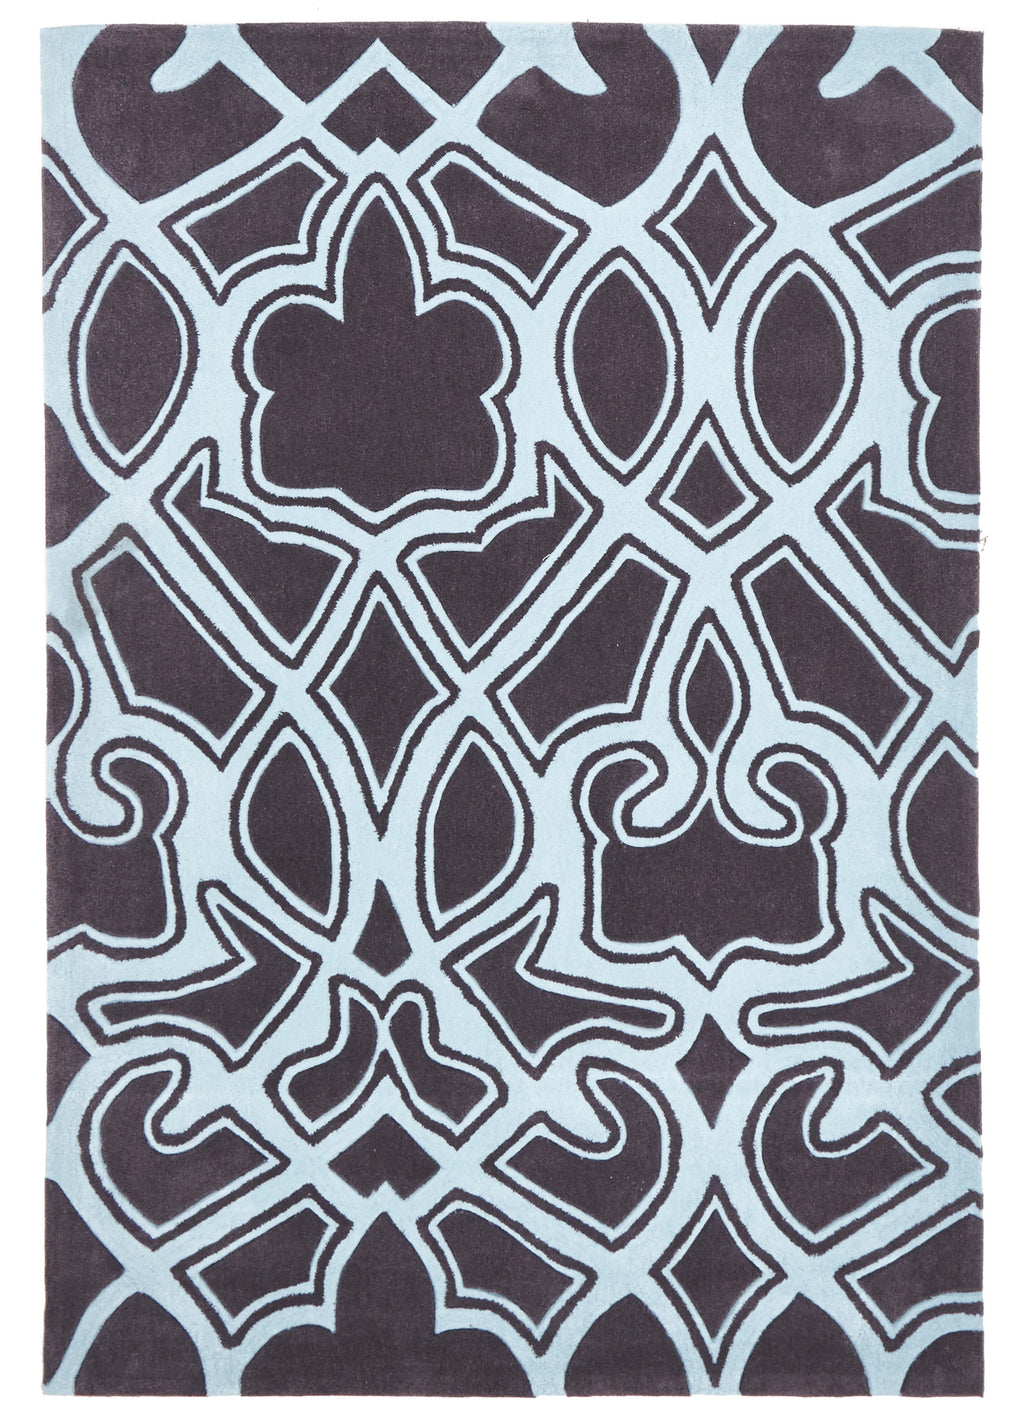 Grande Gothic Tribal Design Rug Smoke Grey and Blue